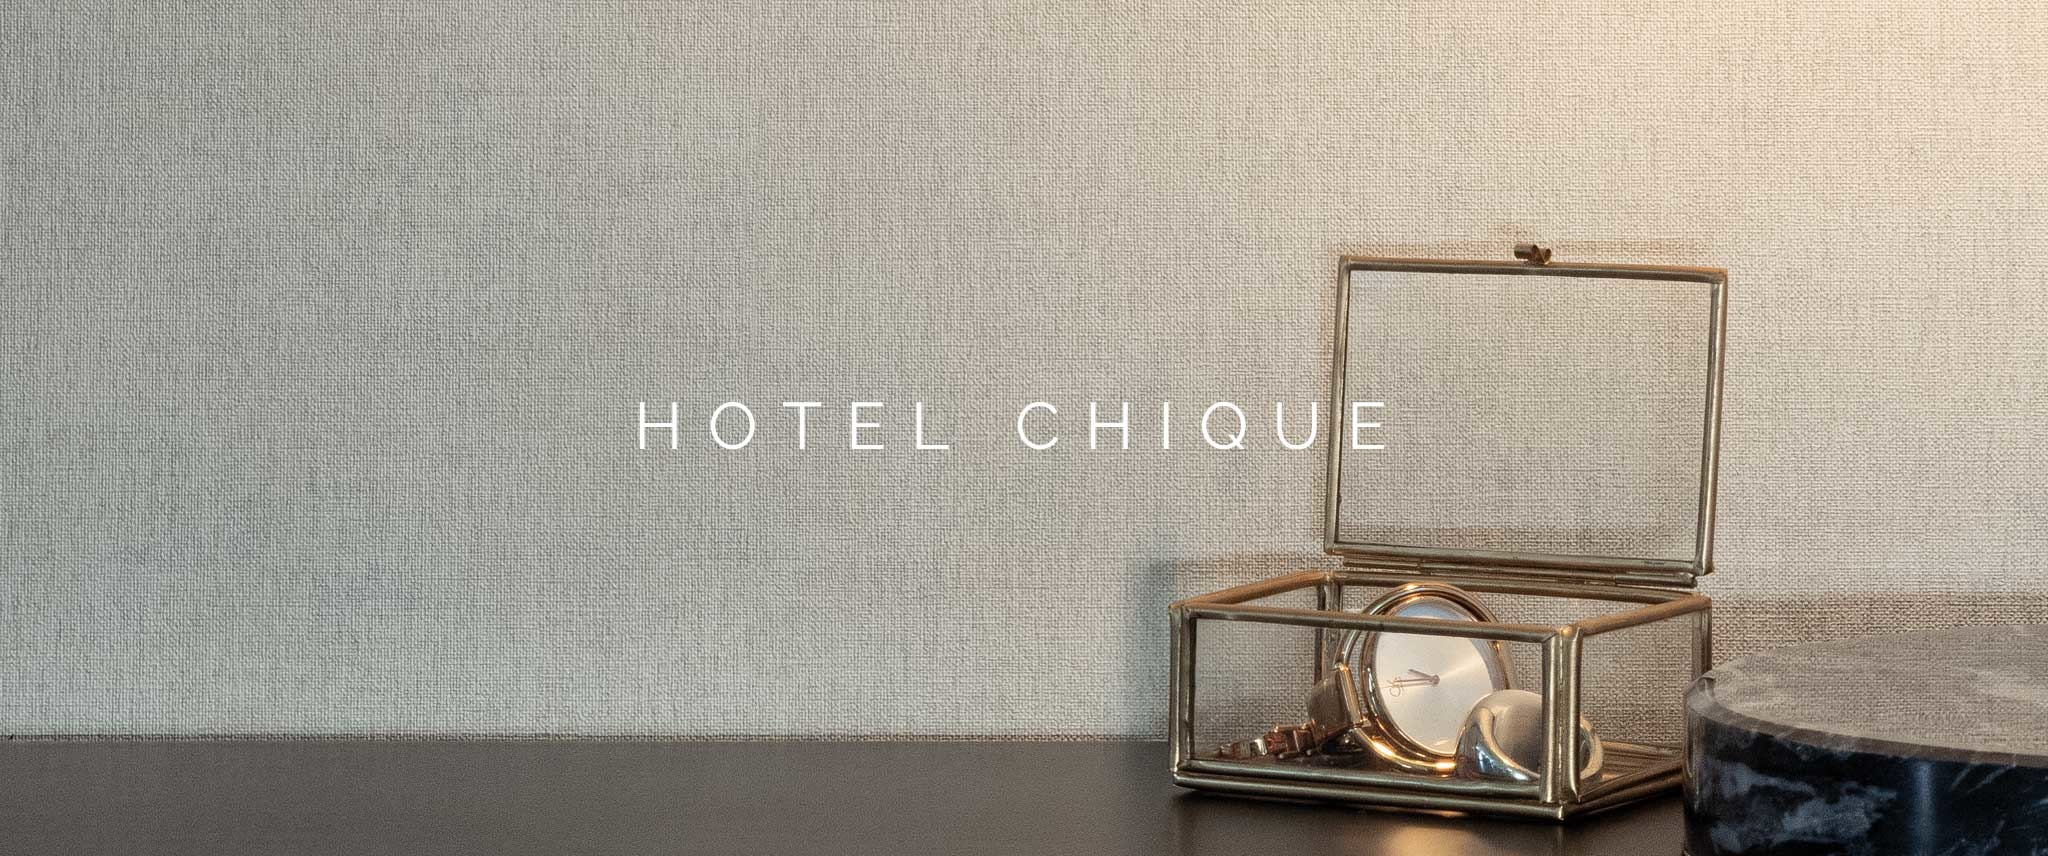 Wallpaper Hotel Chique